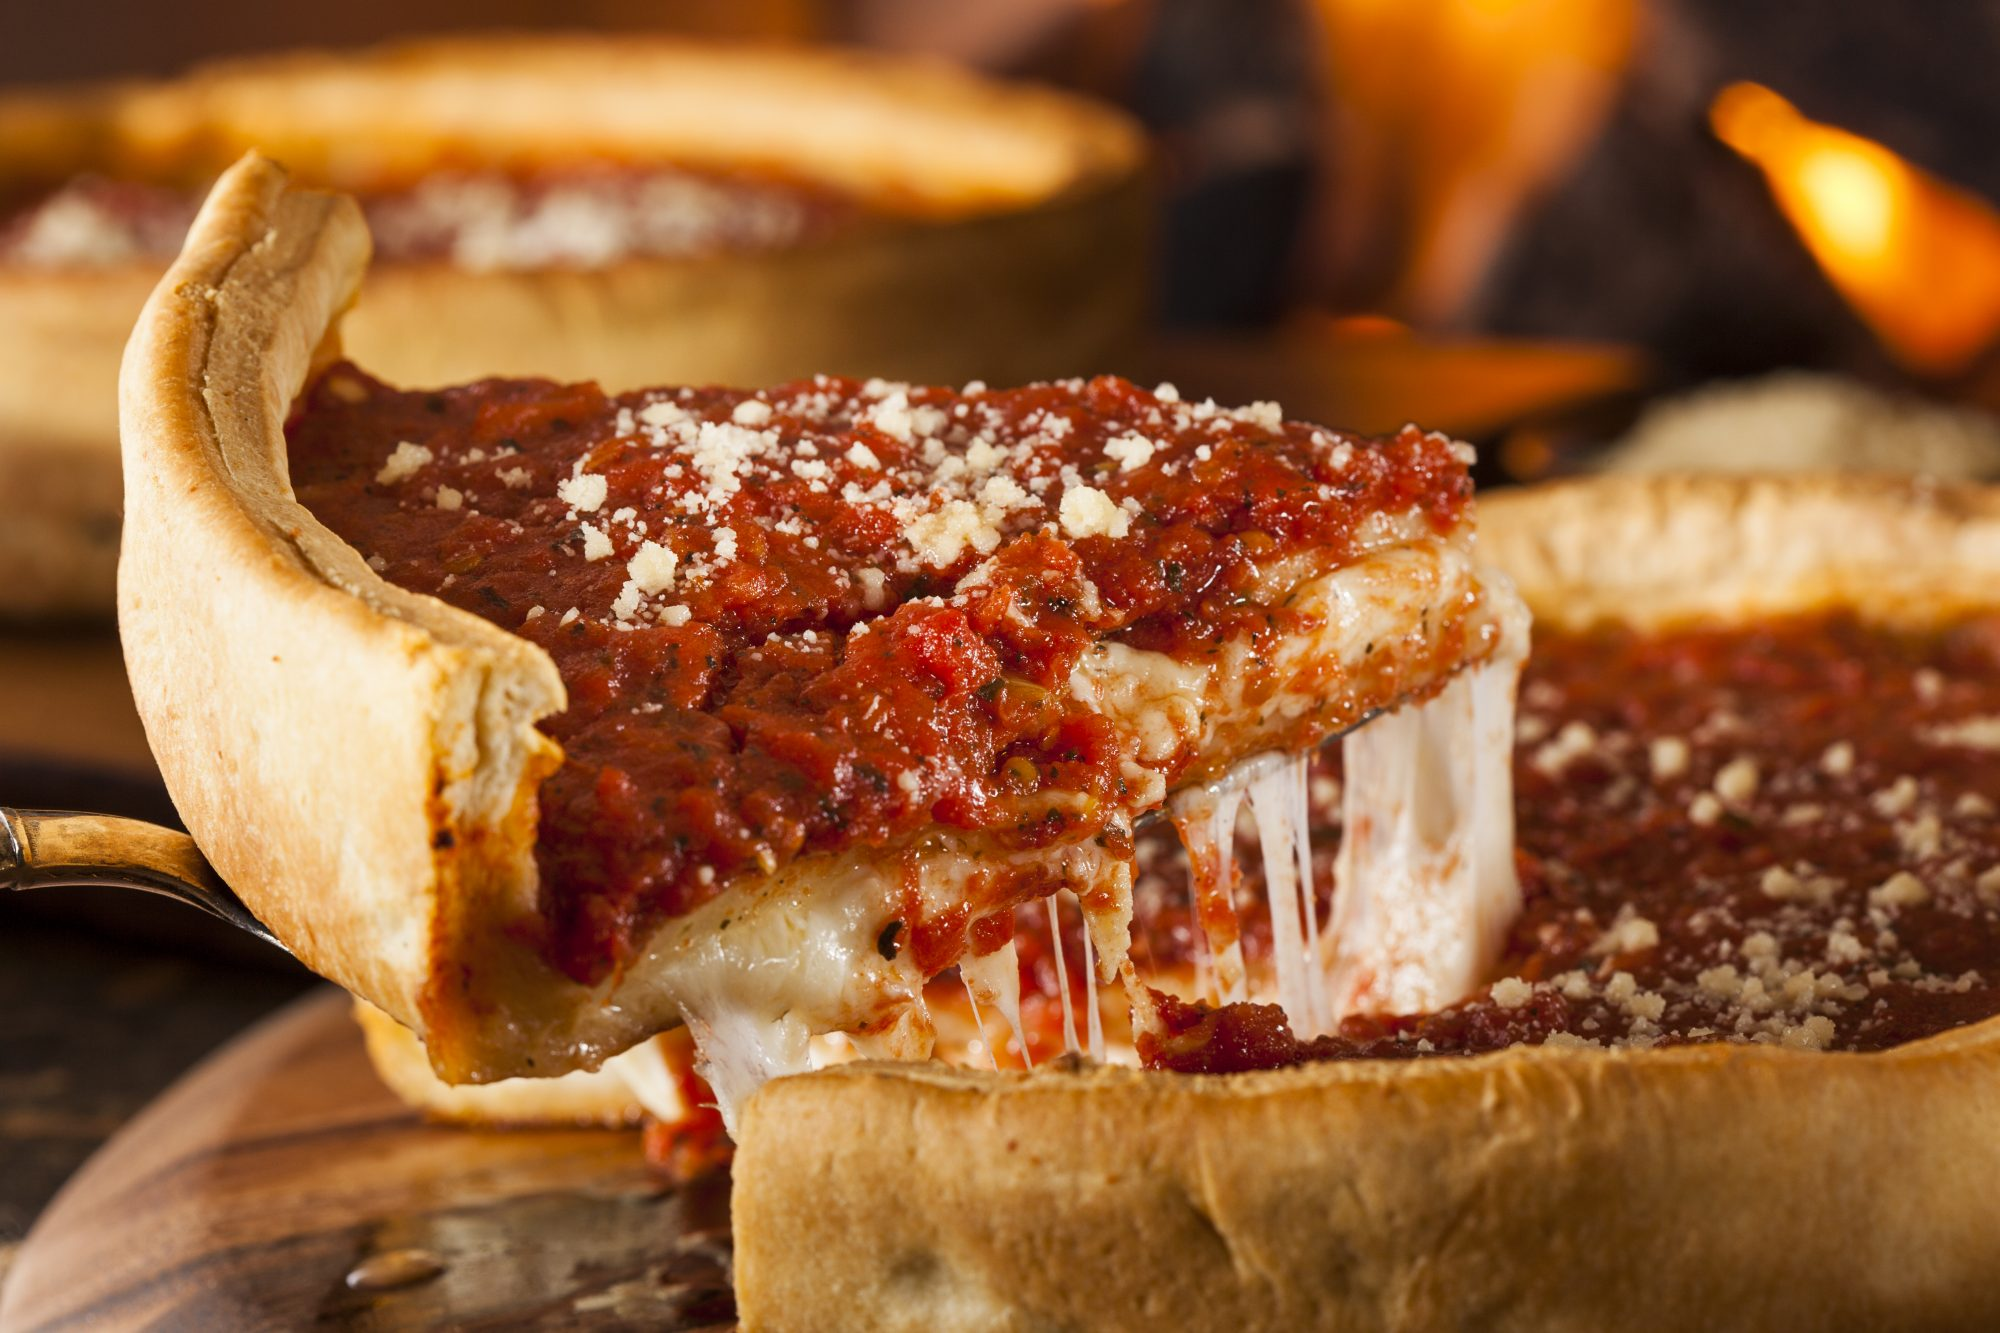 Chicago pizza Getty 3/6/20